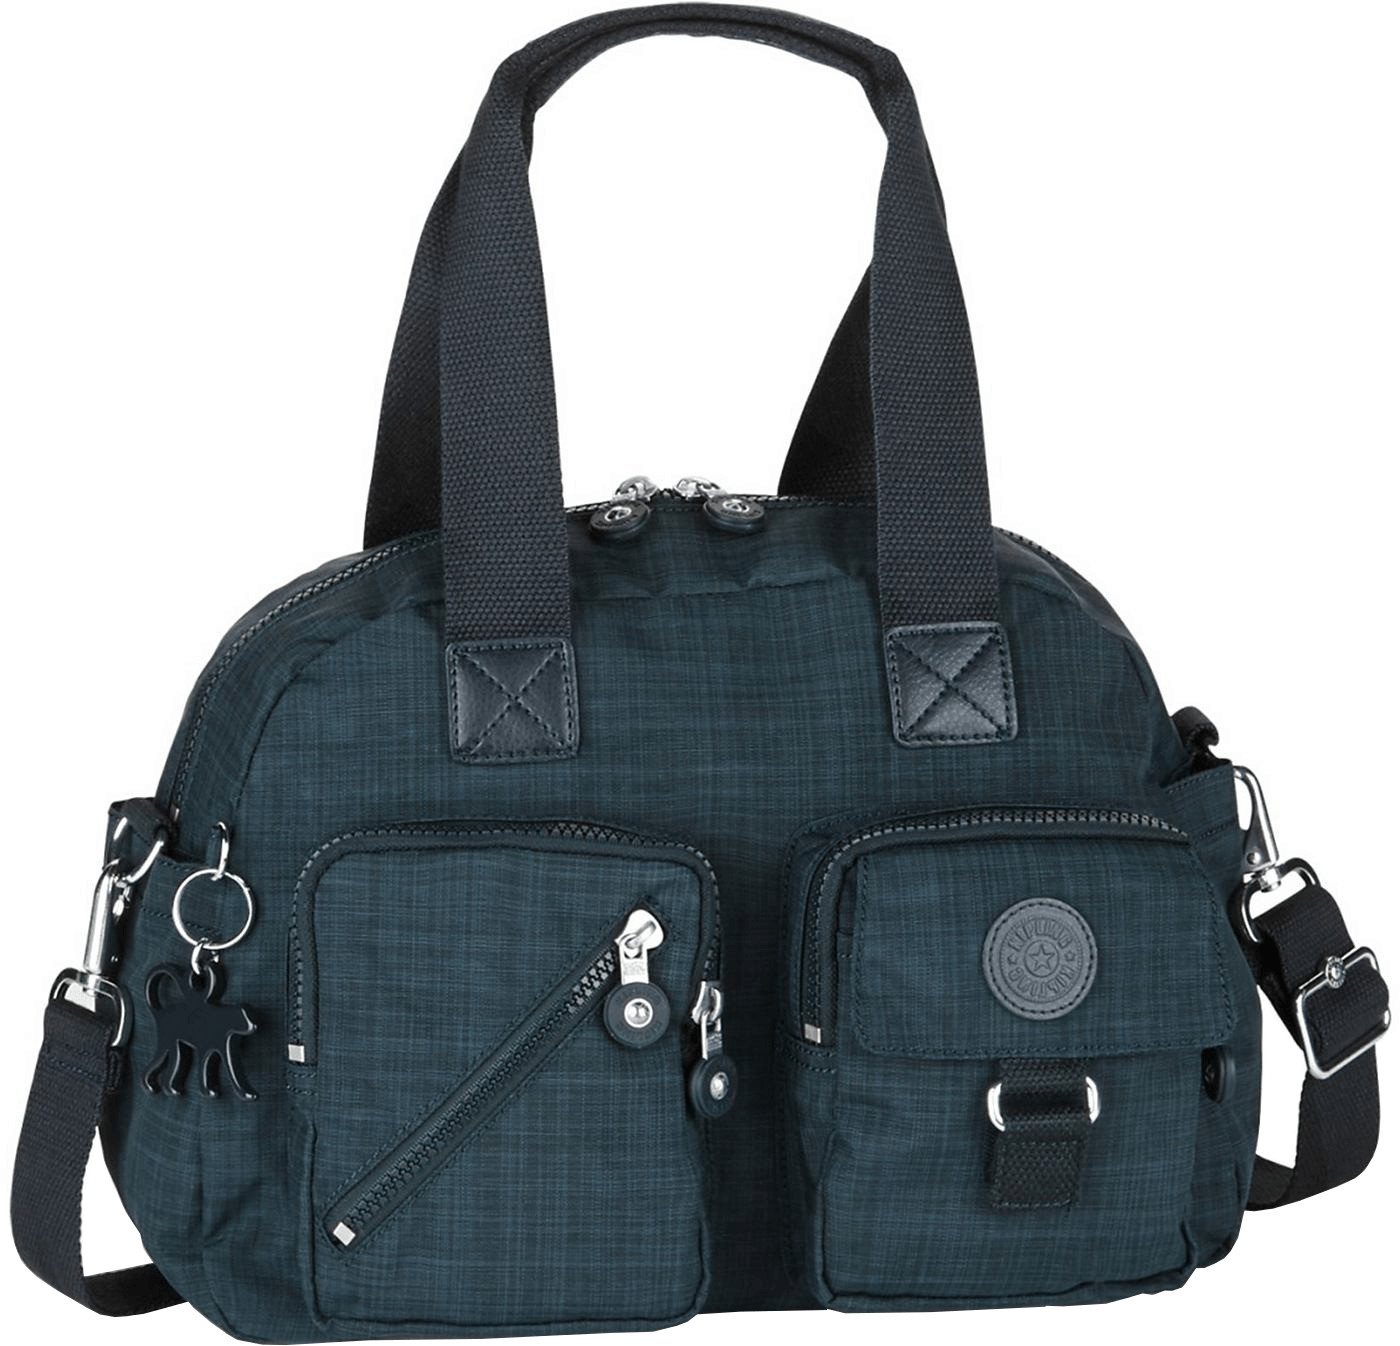 Kipling Basic Defea dazz true blue